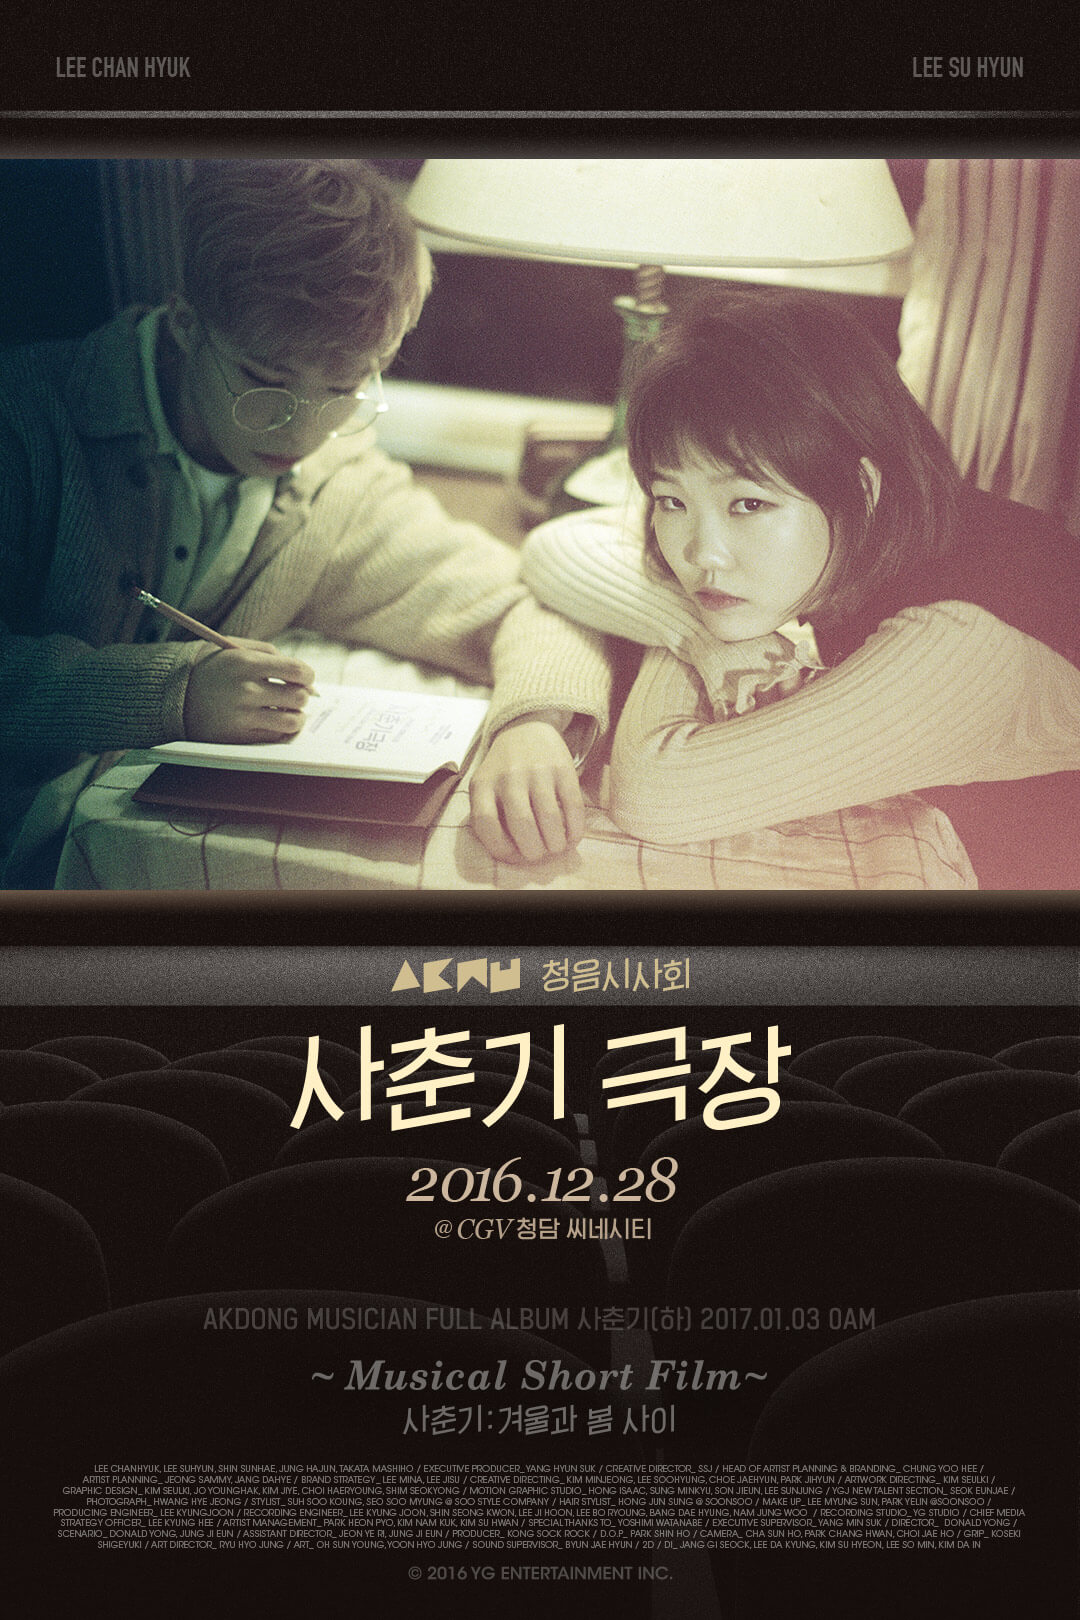 Akdong Musician Winter musical